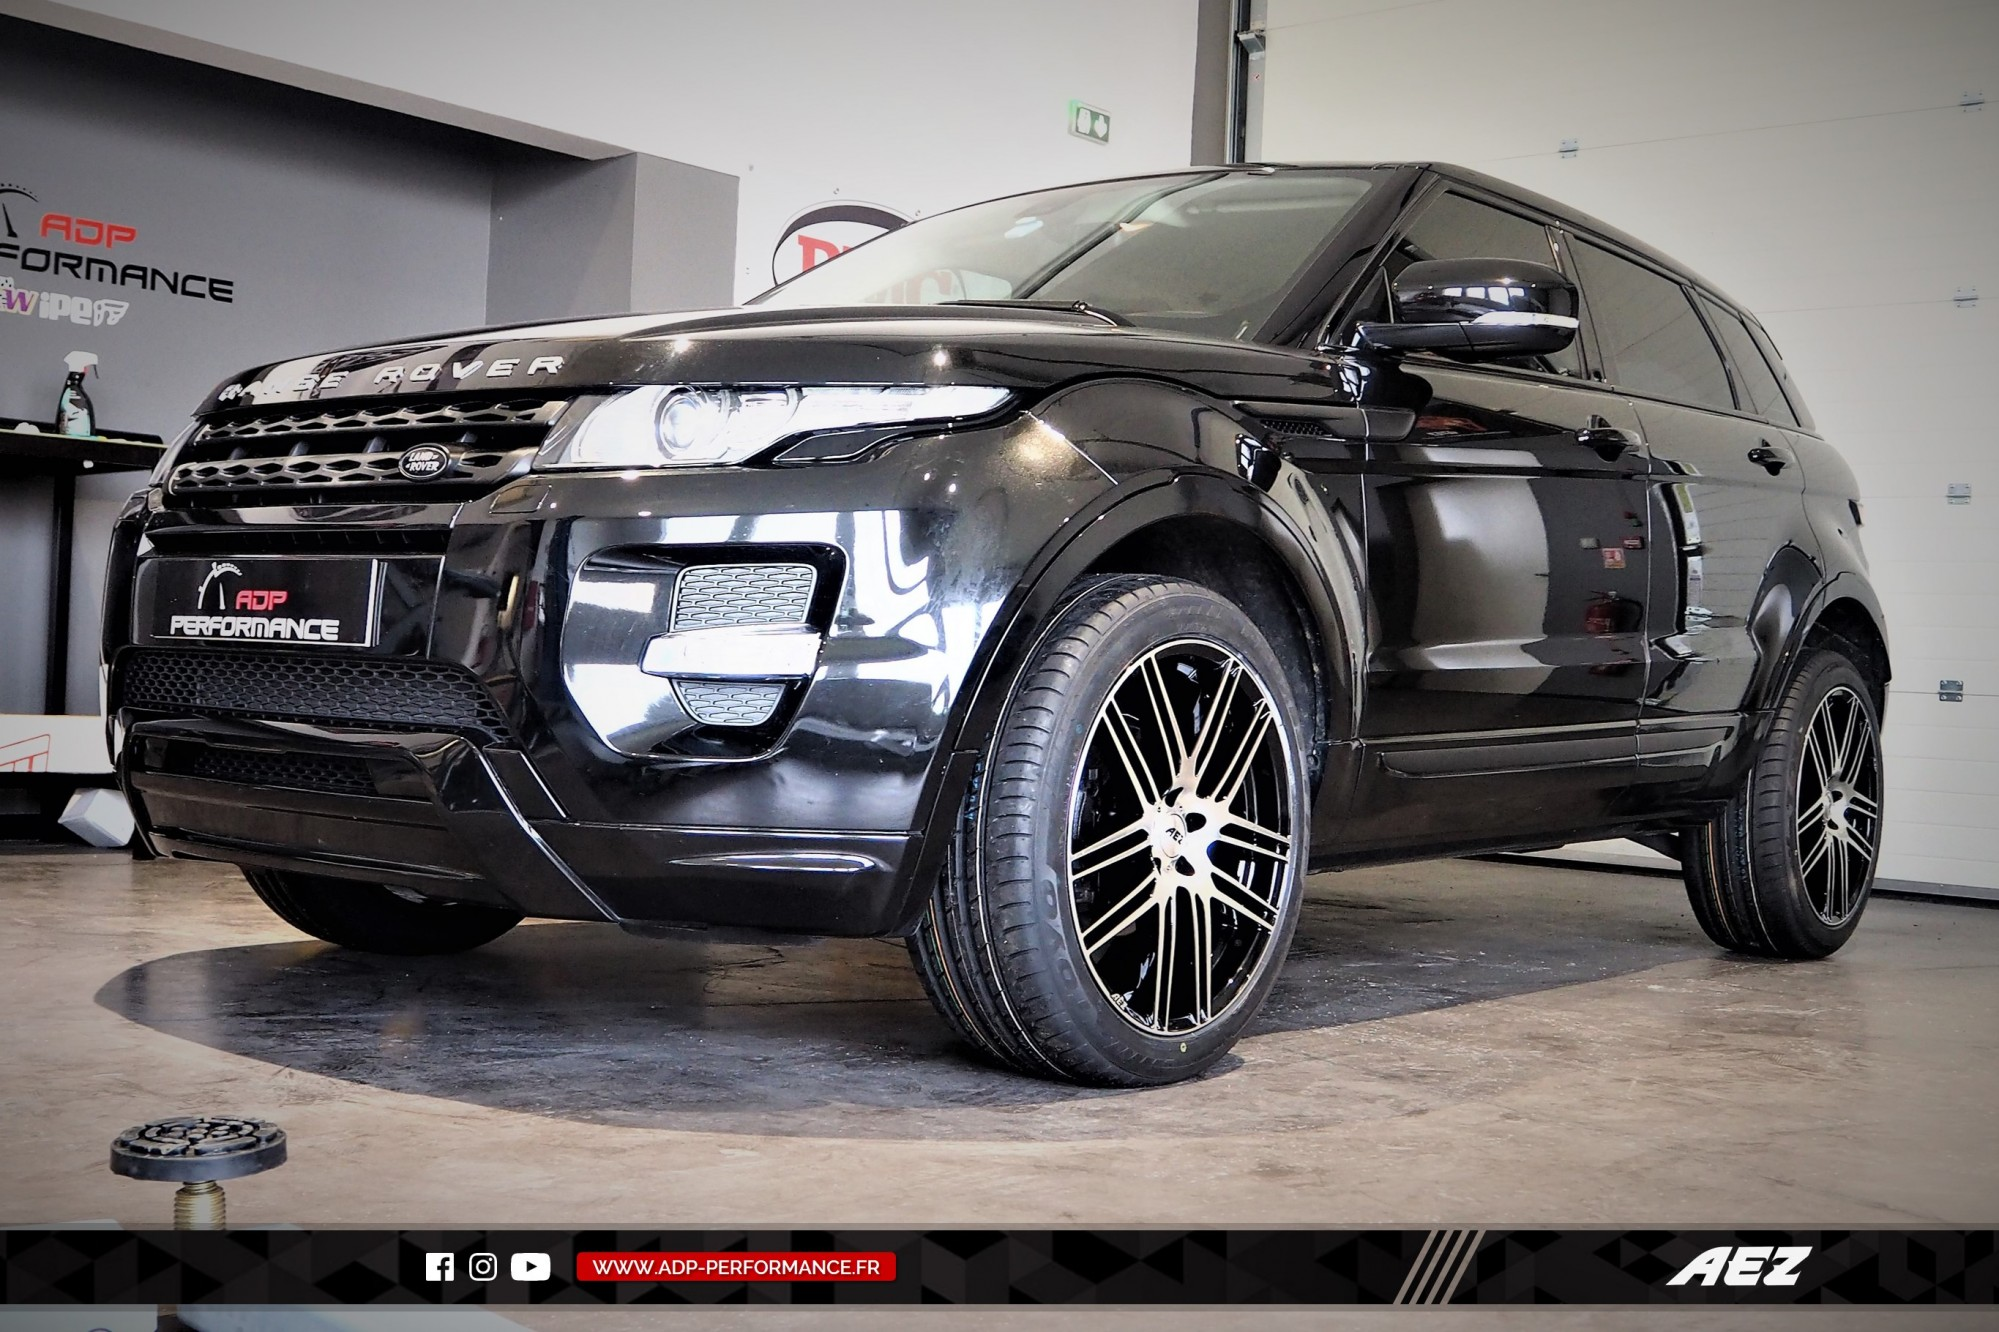 Jantes AEZ Nimes - Land Rover Evoque - ADP Performance